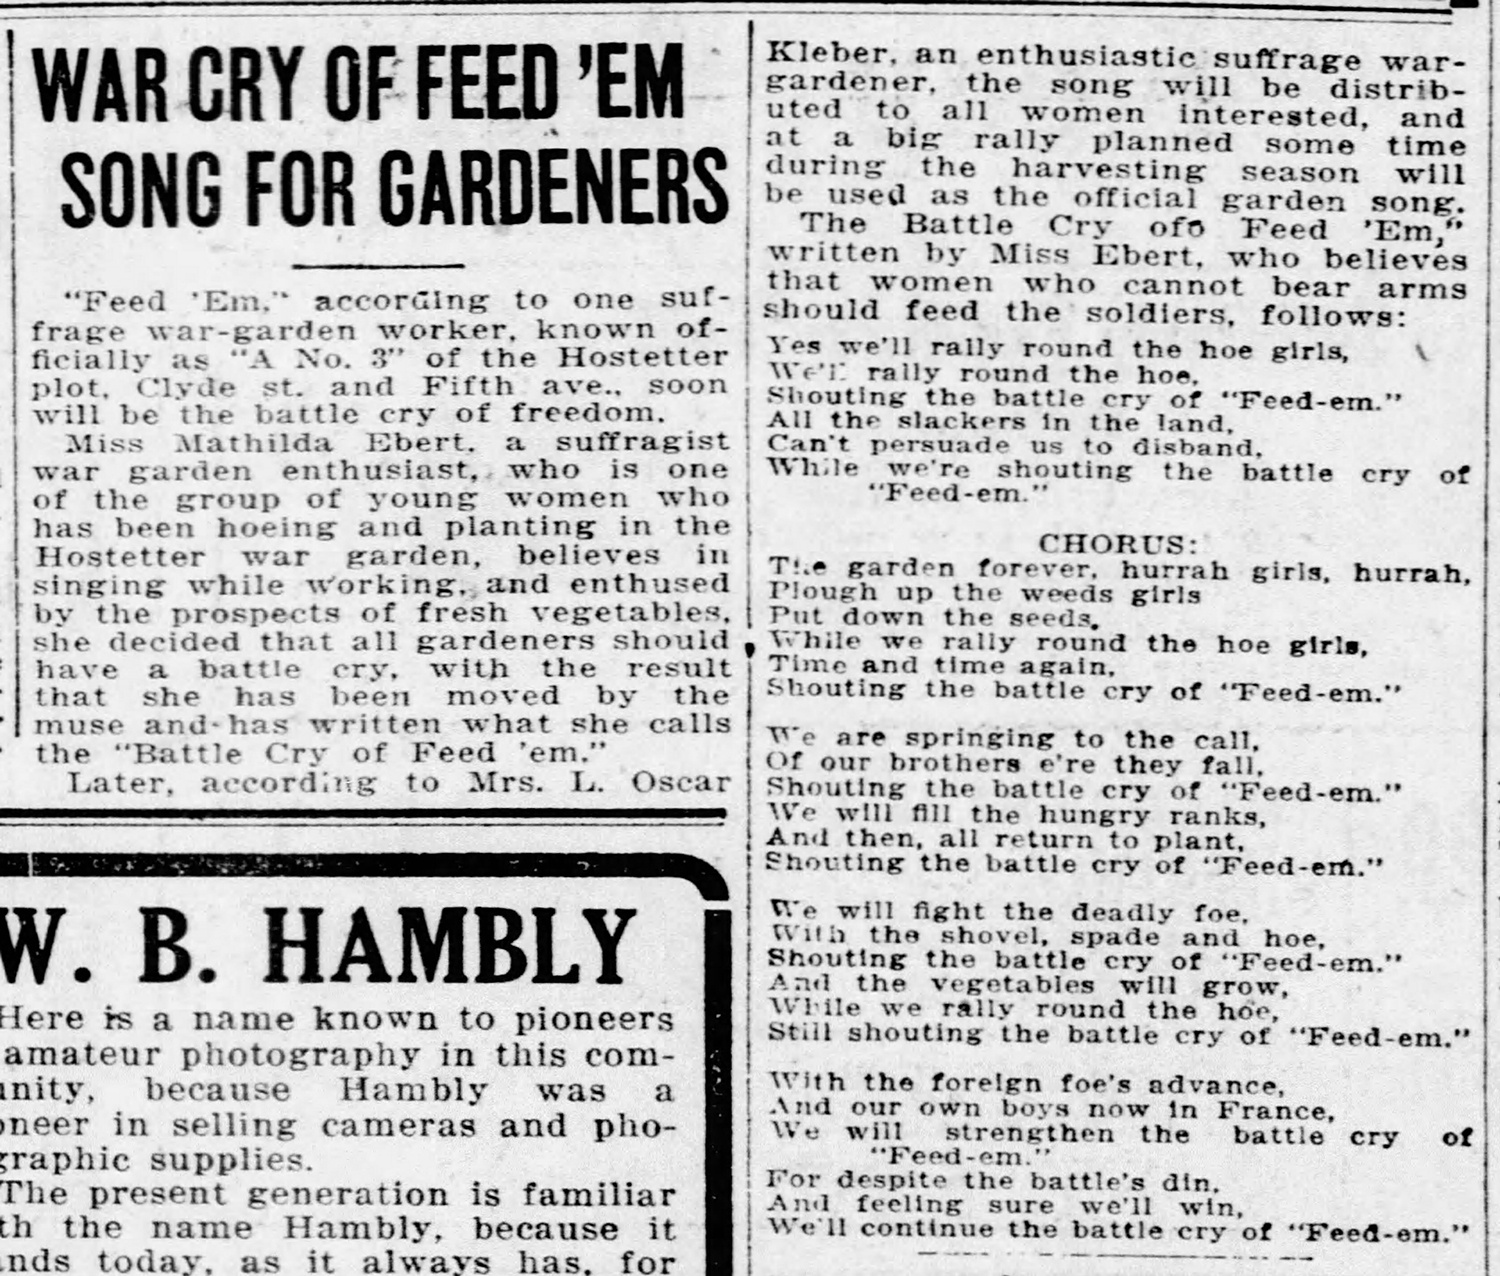 """""""War Cry of Feed 'Em,"""" news clipping about a war-garden suffrage supporter's """"battle cry"""" song, set to the """"Battle Cry of Freedom,"""" 1917."""